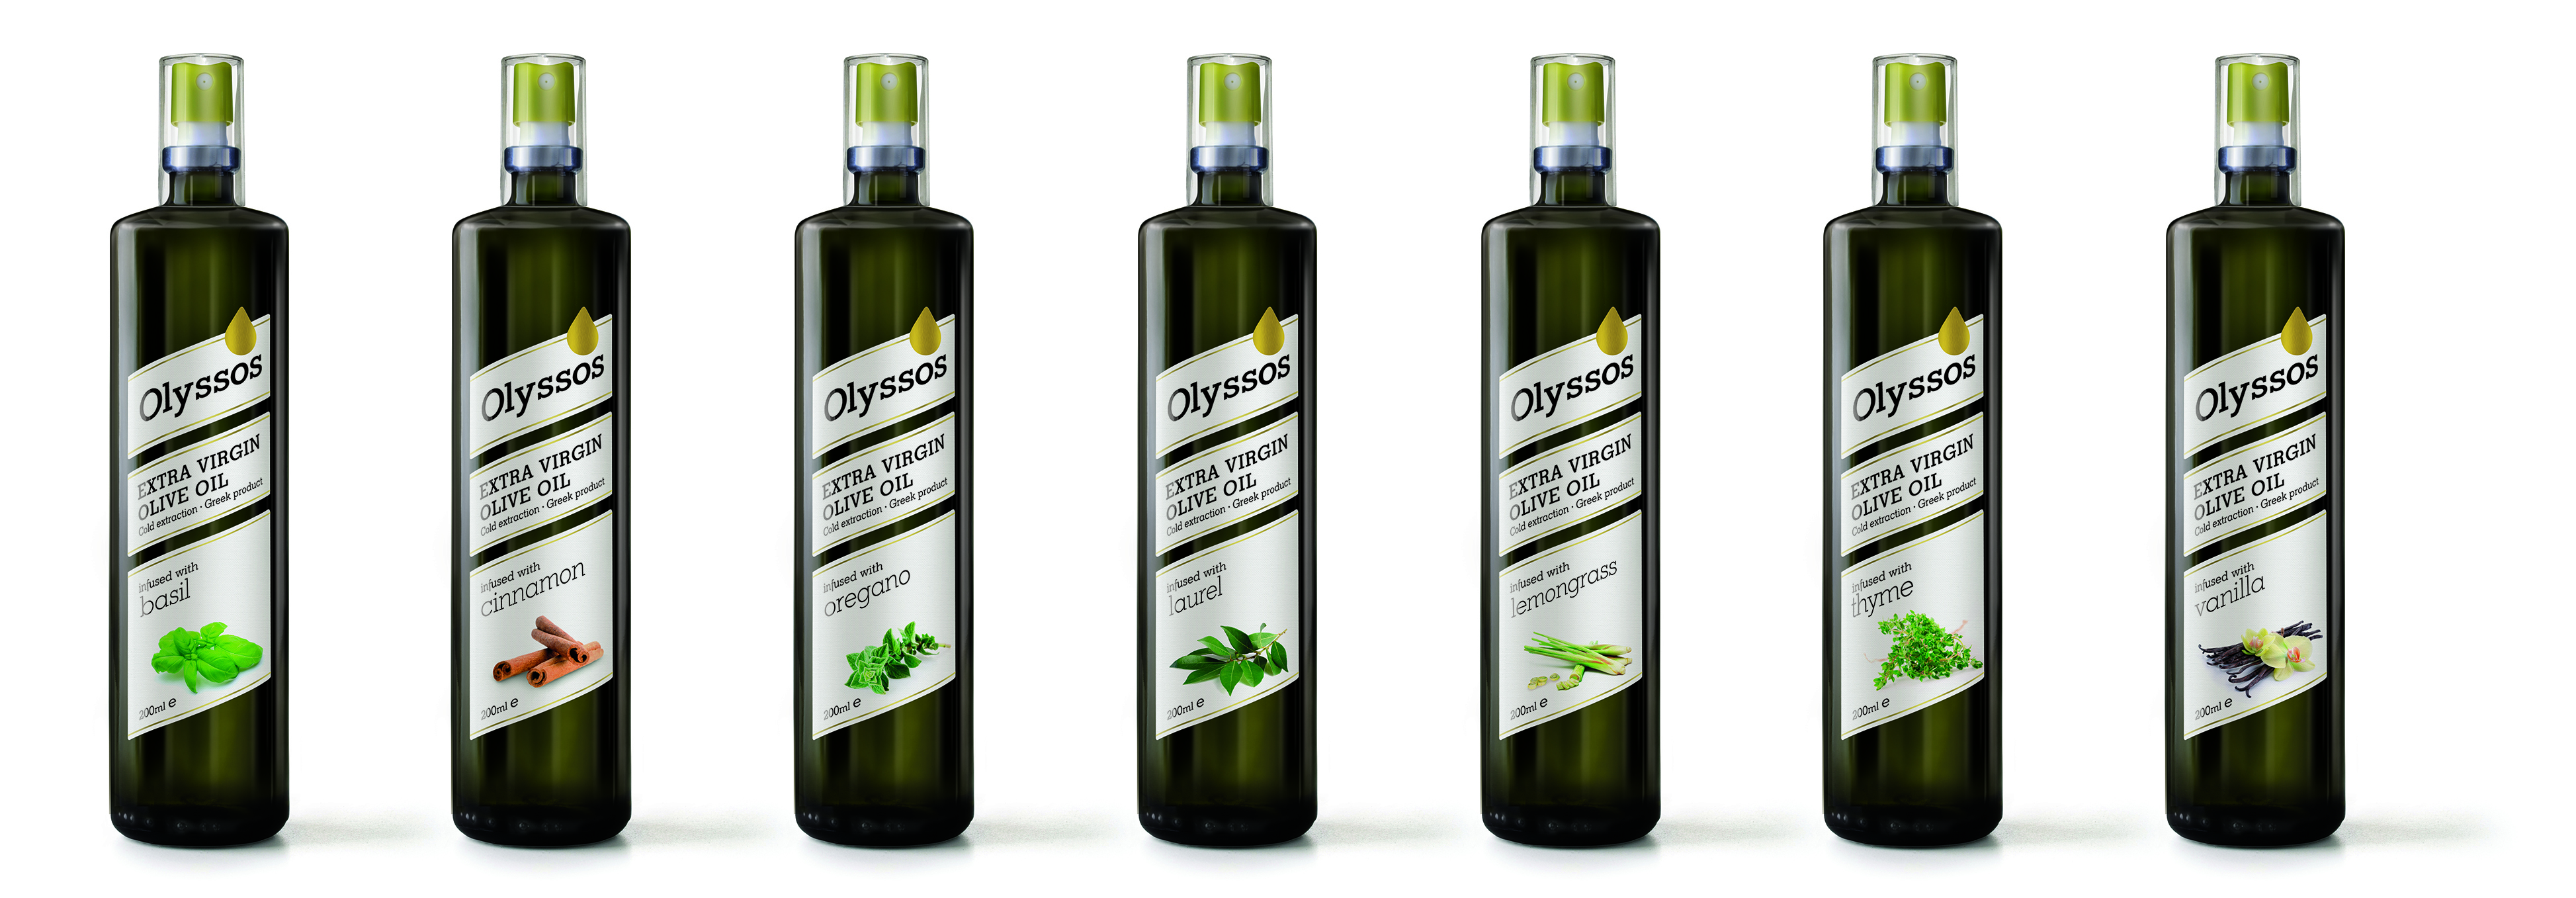 New line of Aromatic Extra Virgin Olive Oils with spices and herbs